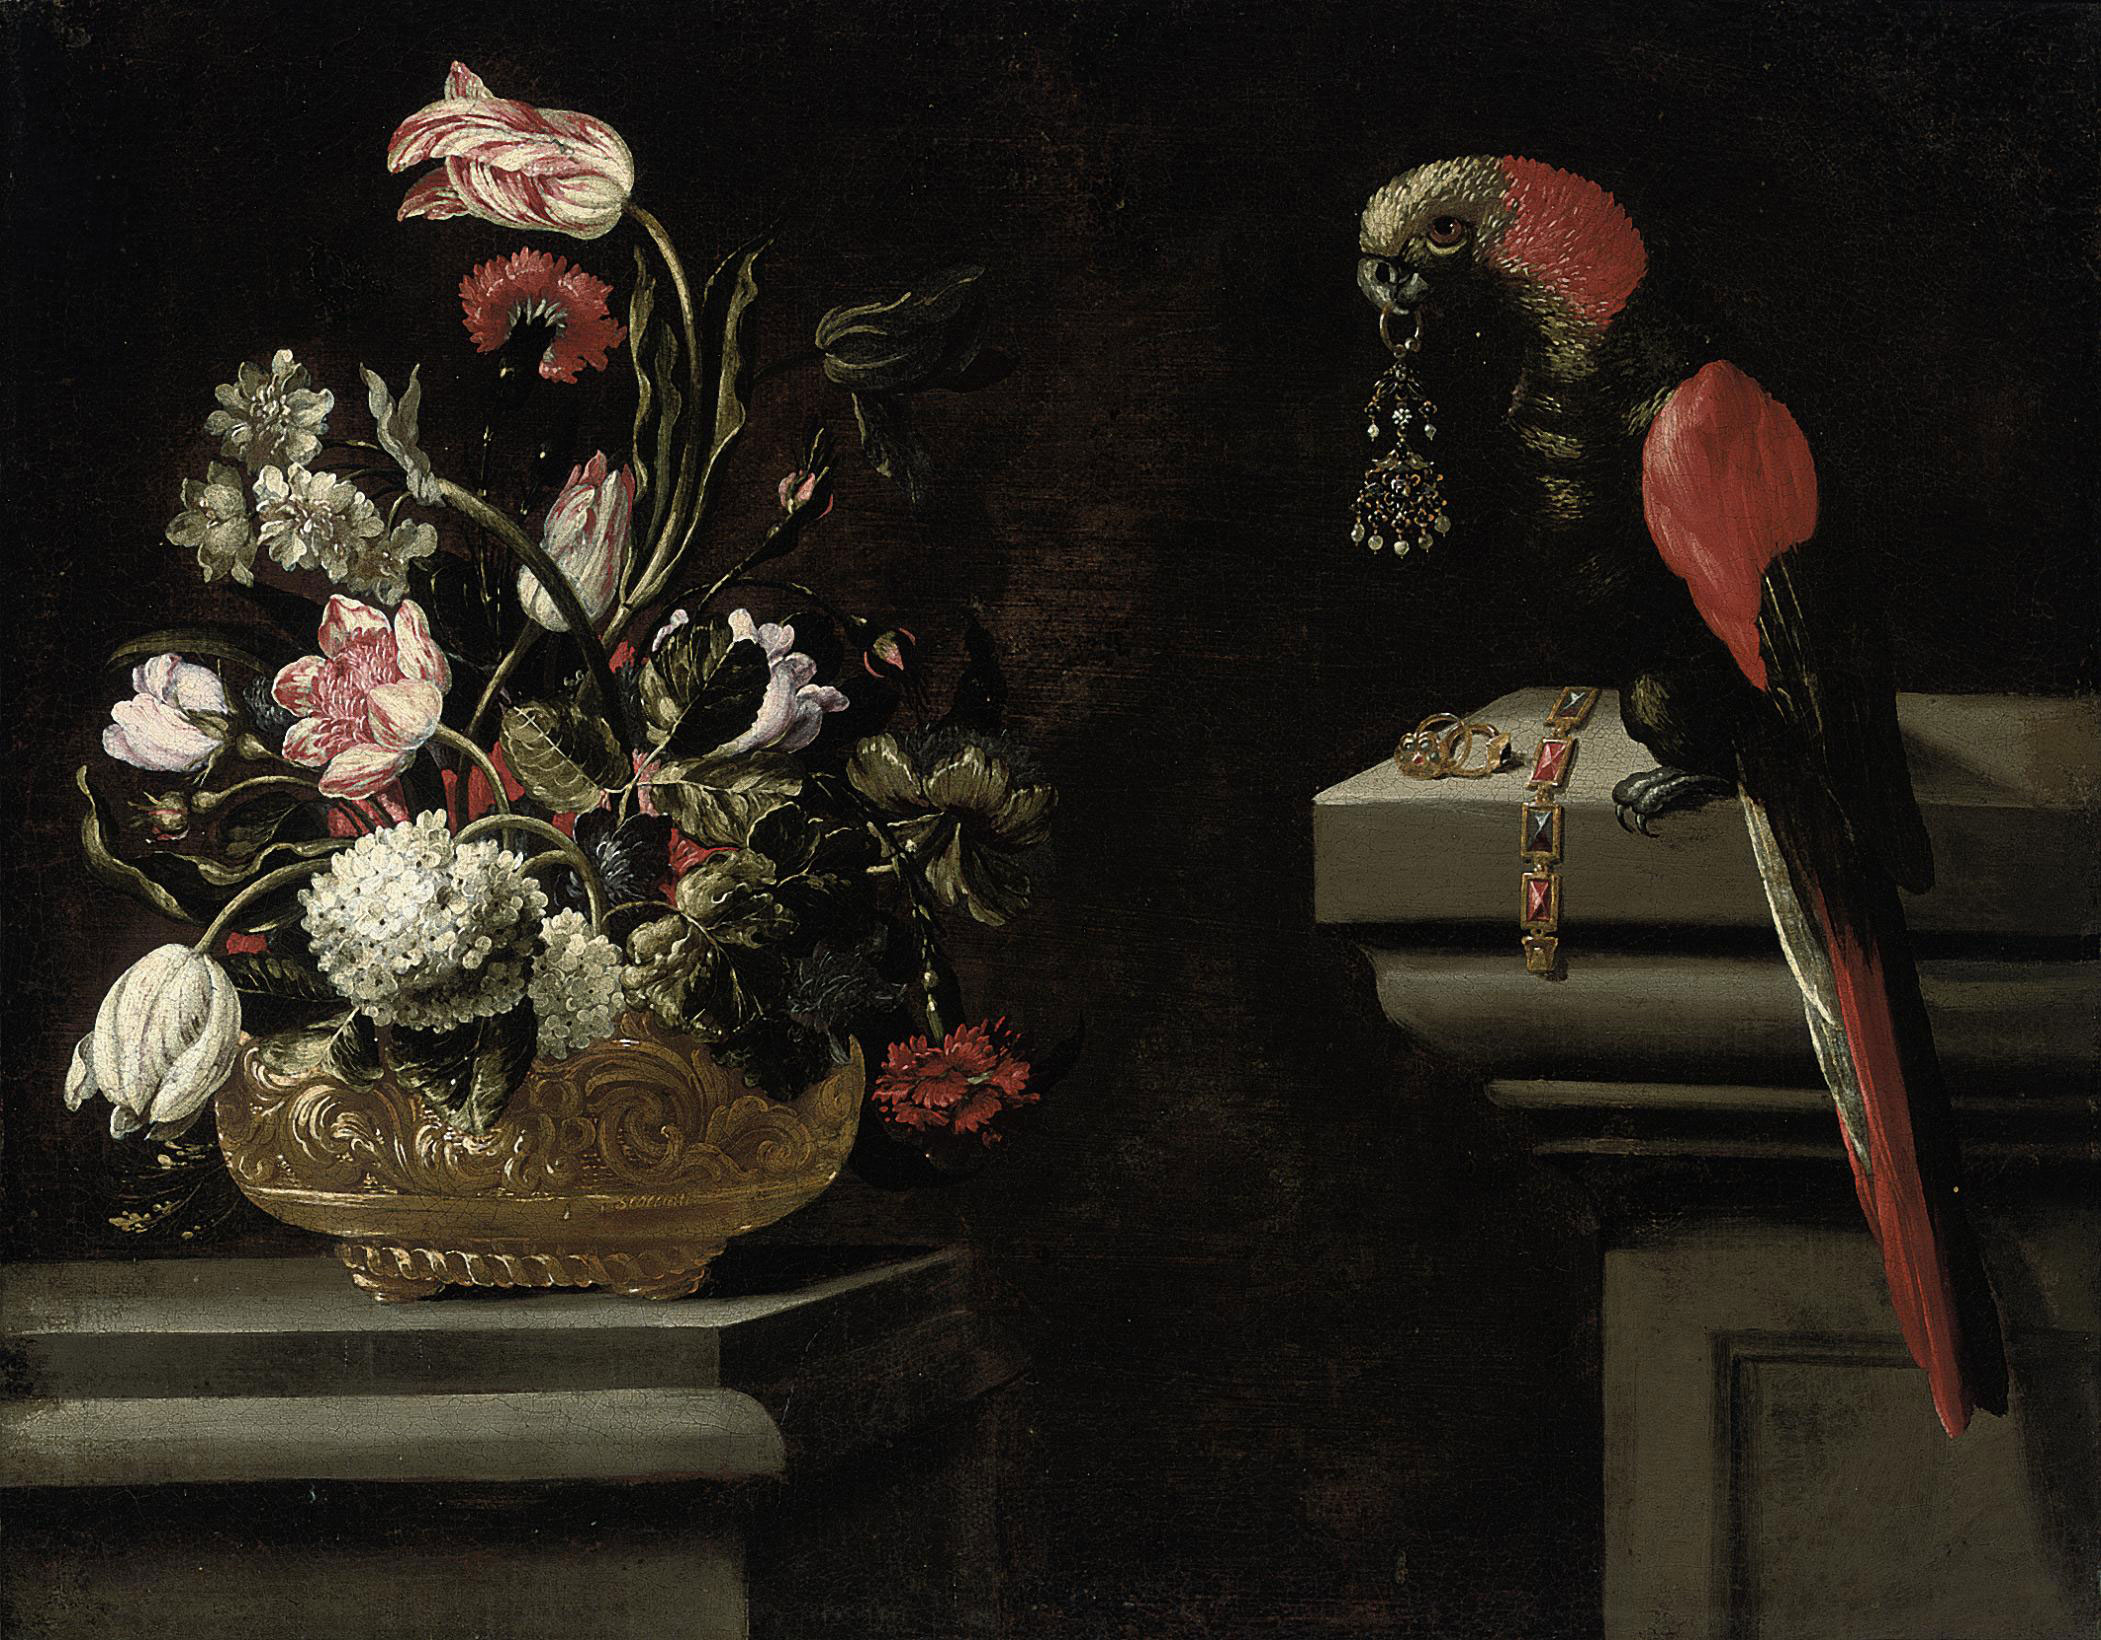 Parrot tulips, hydrangeas, carnations and other flowers in an urn with a parrot holding an earring in its beak on a ledge